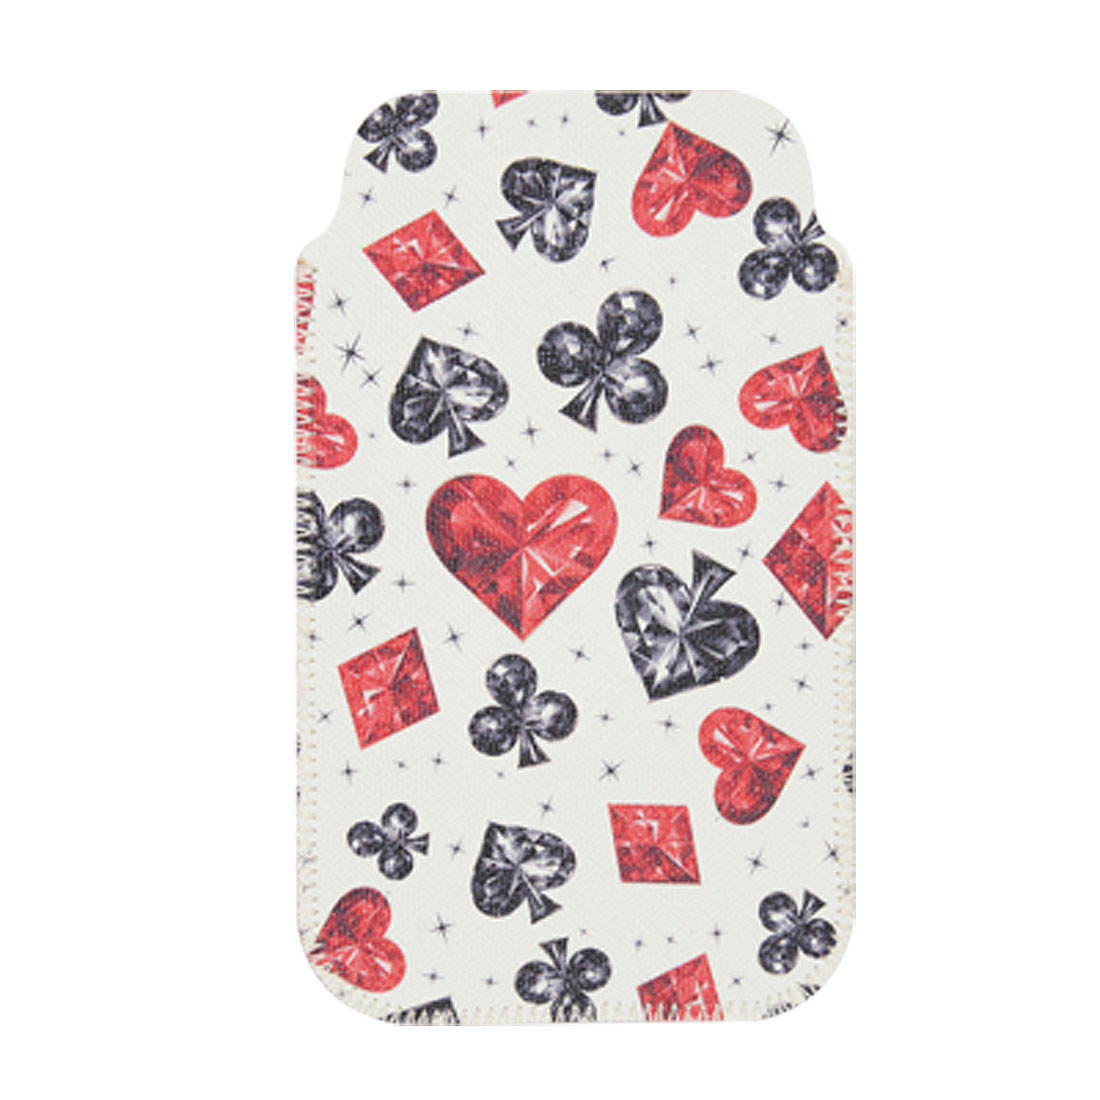 Red Heart Rhombus Printed Faux Leather Pouch for iPhone 4 4G